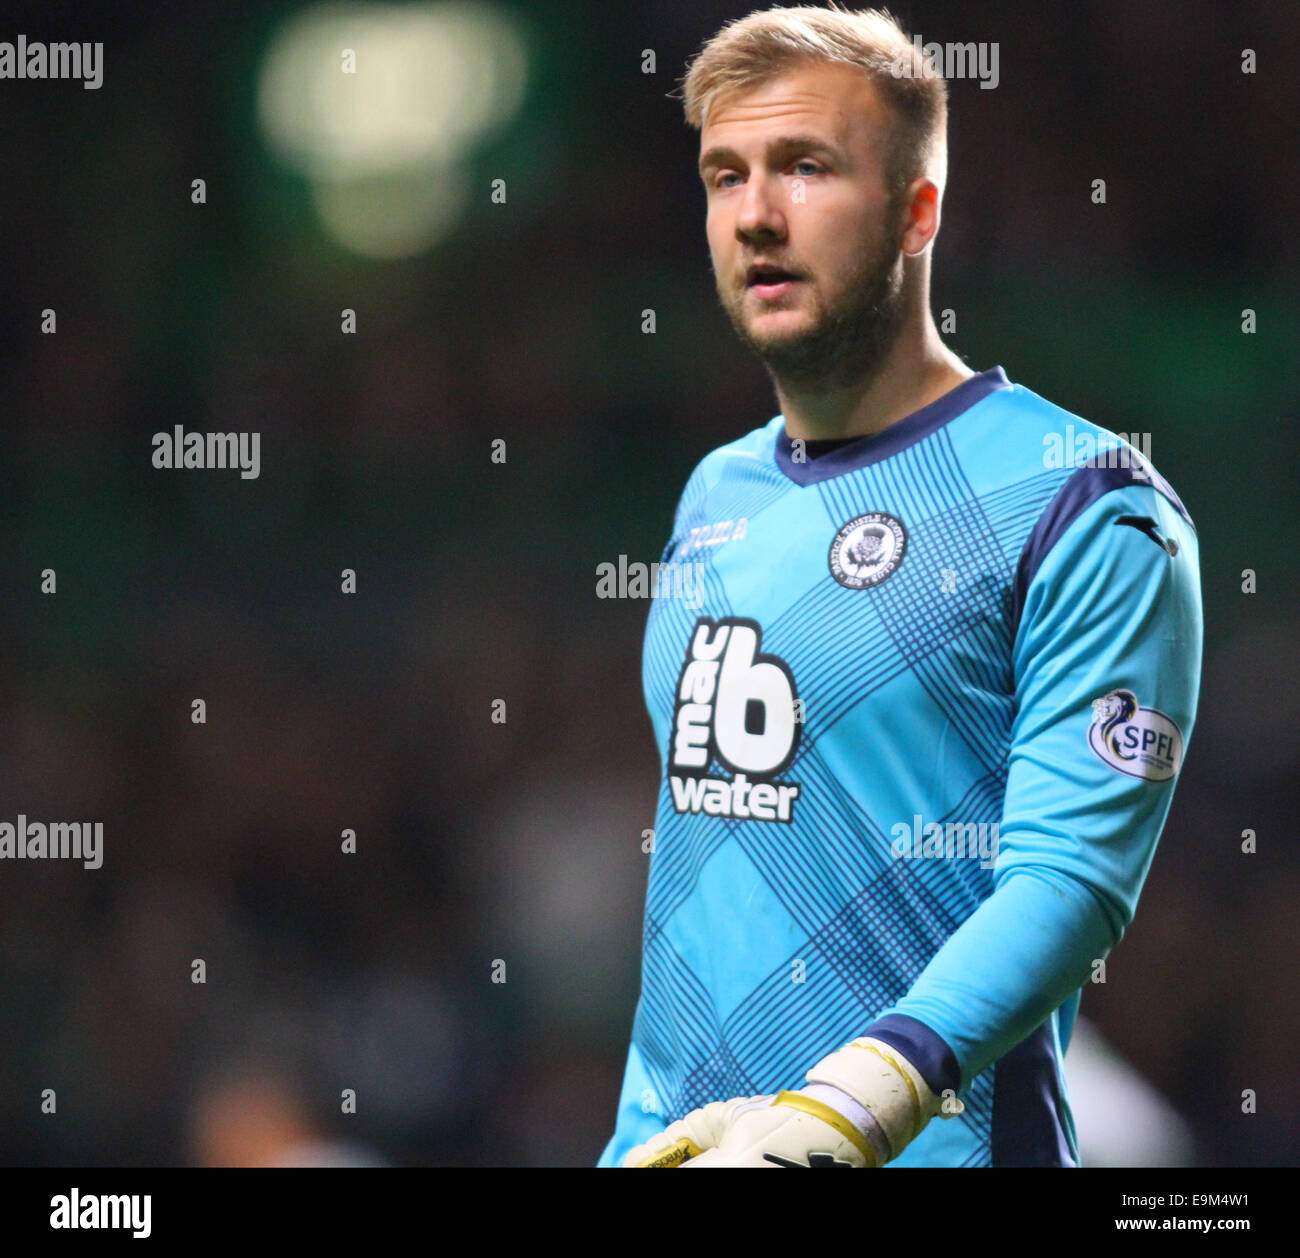 Glasgow, Scotland. 29th Oct, 2014. Scottish League Cup. Celtic versus Partick Thistle. Scott Fox, goalkeeper of - Stock Image